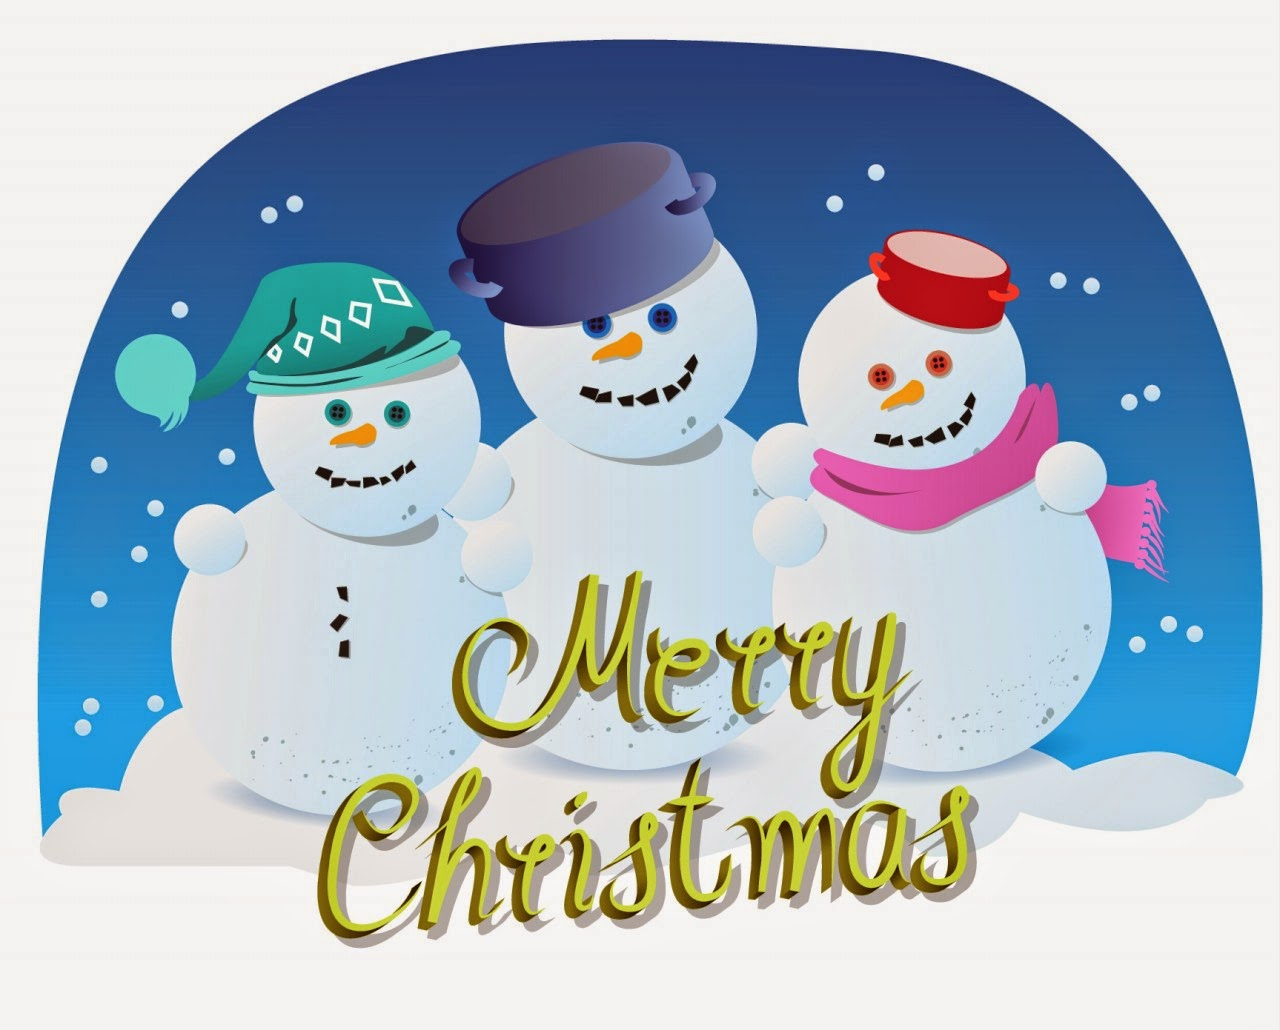 Merry-Christmas-snowman-cartoon-greetings-vector-template-image-free-download.jpg